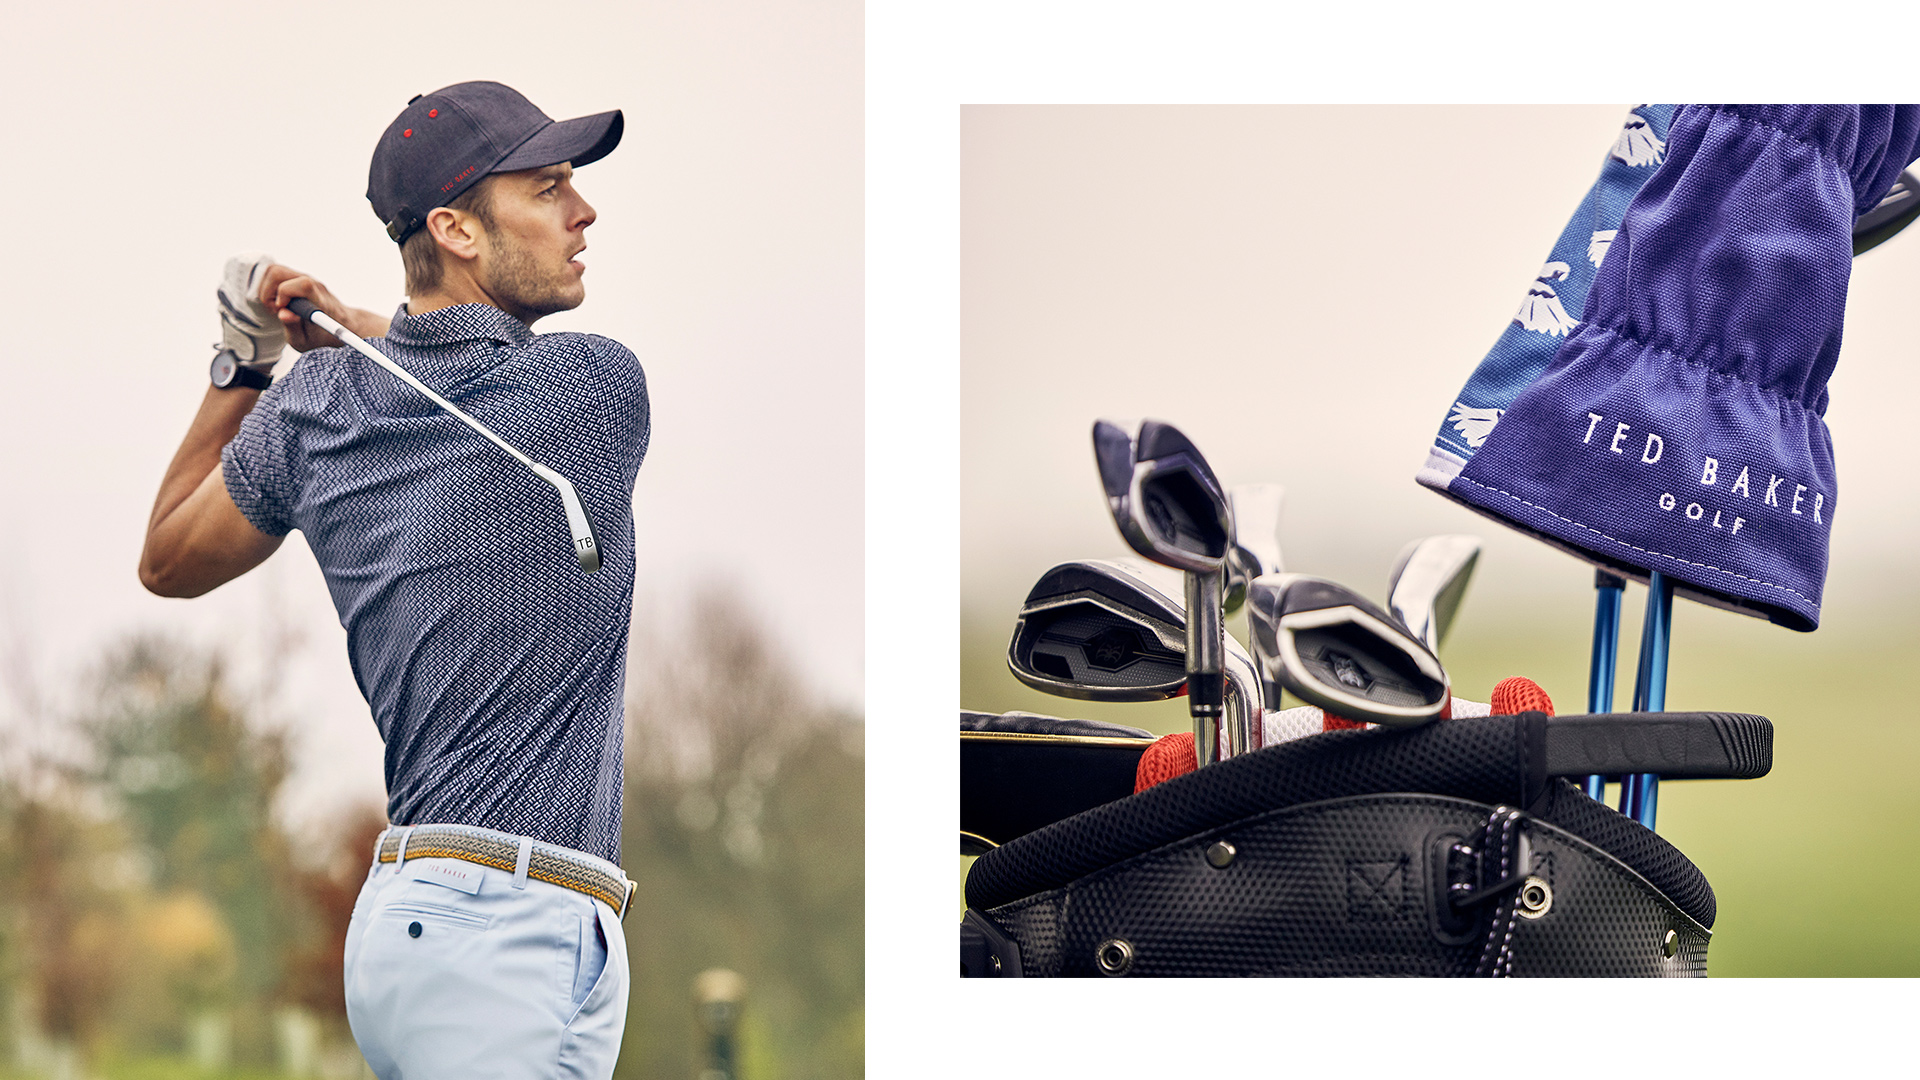 retouching_photography_golf_ted_baker